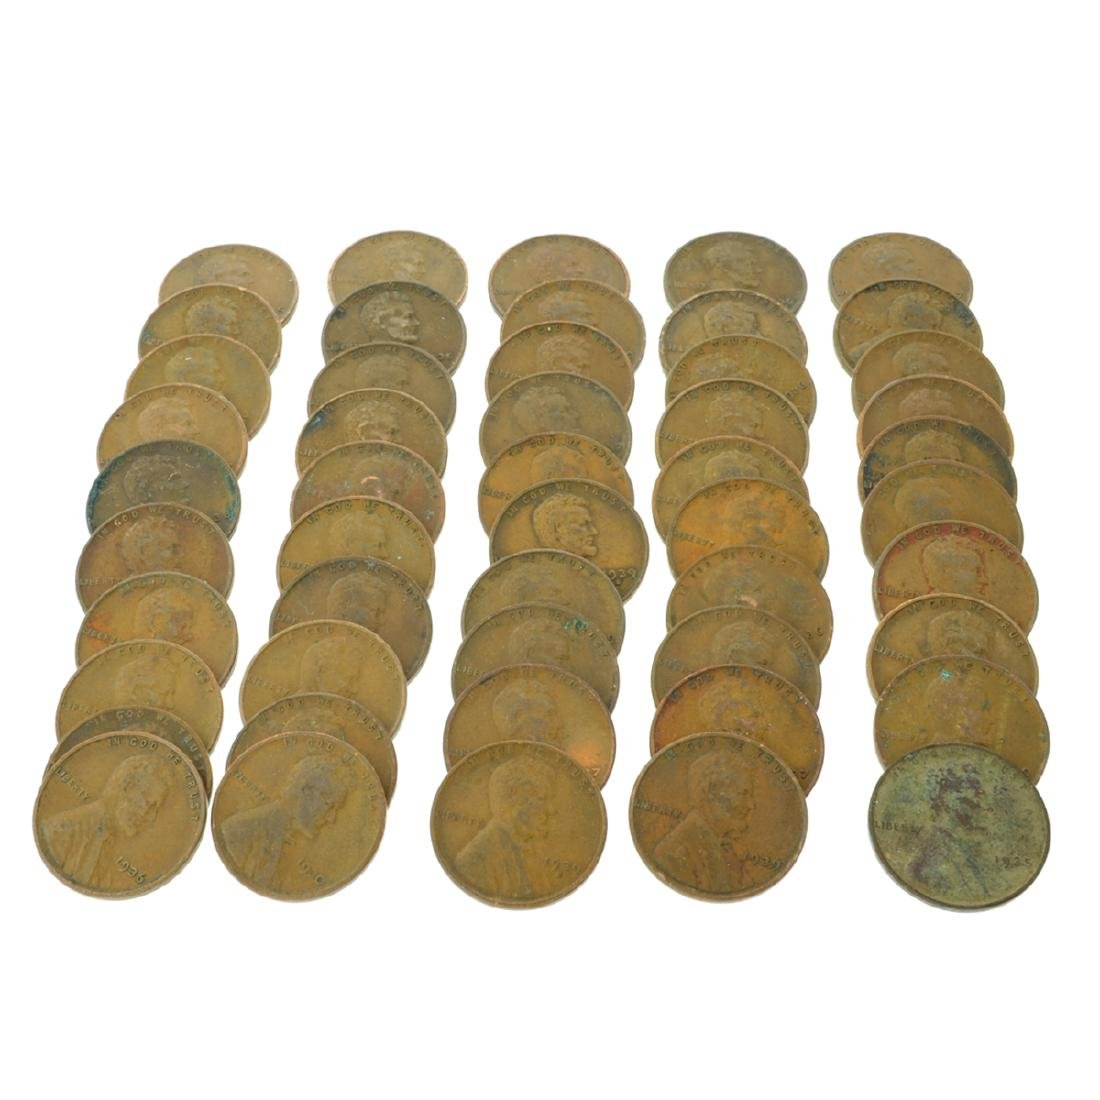 50 Rare 1930's Lincoln Cents - Investment